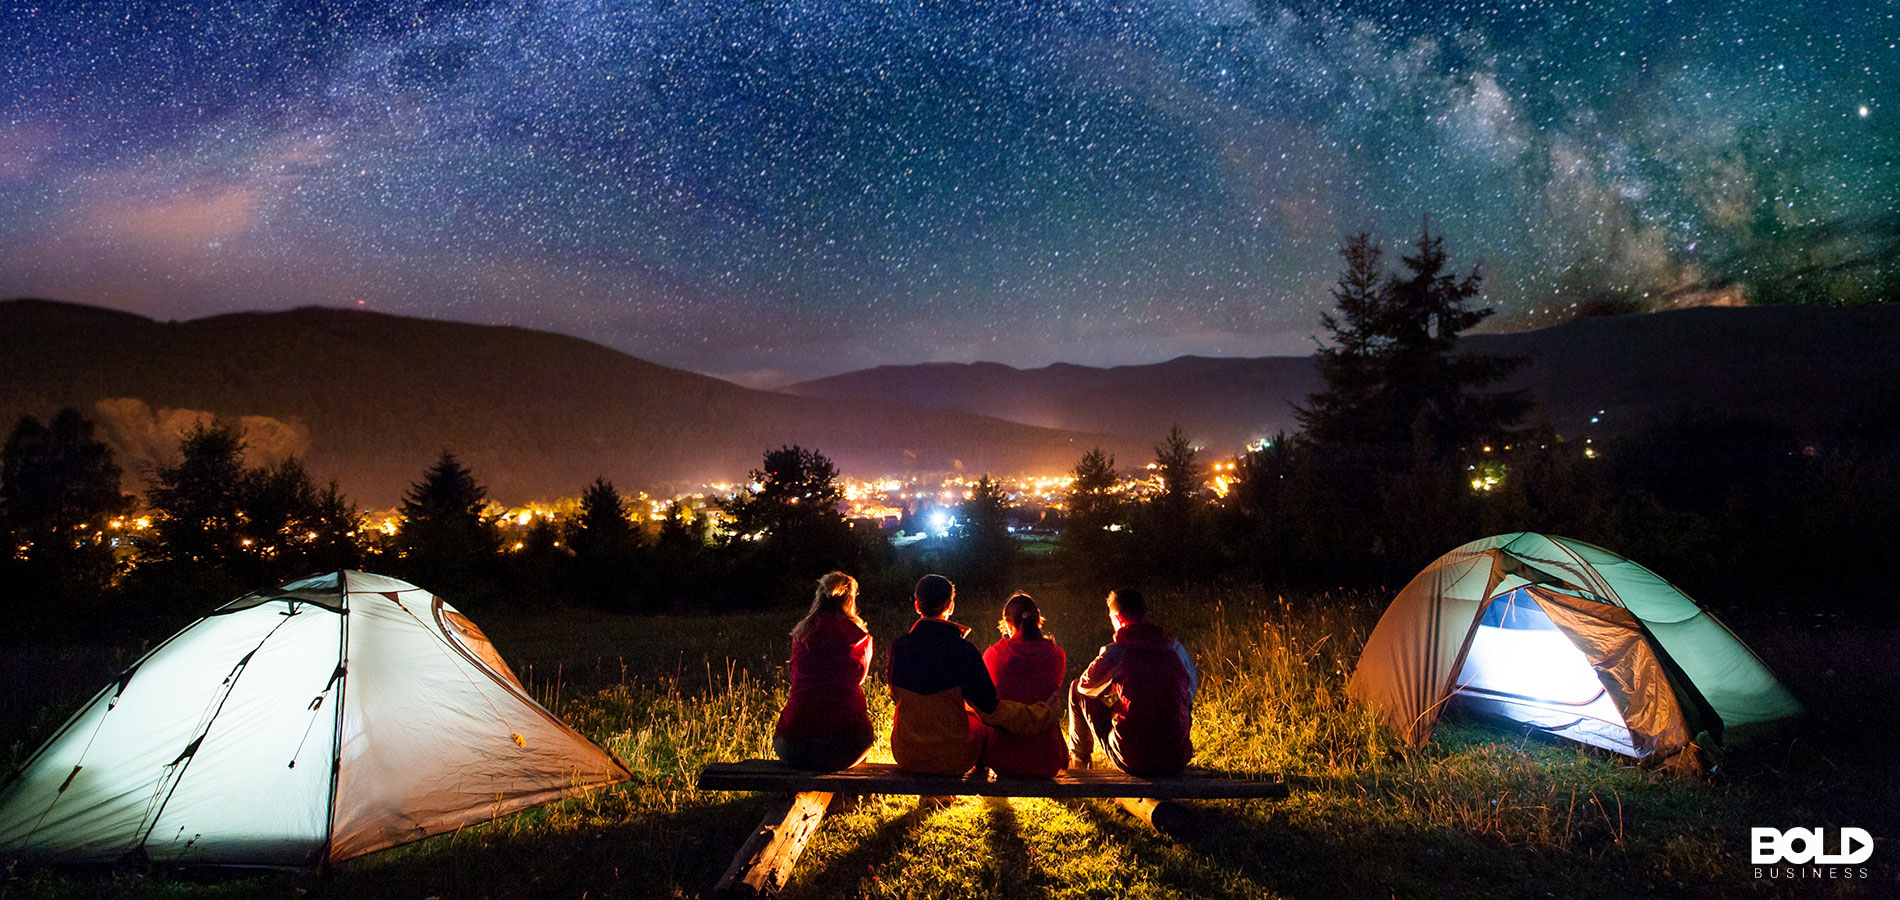 A bunch of people camping under the stars